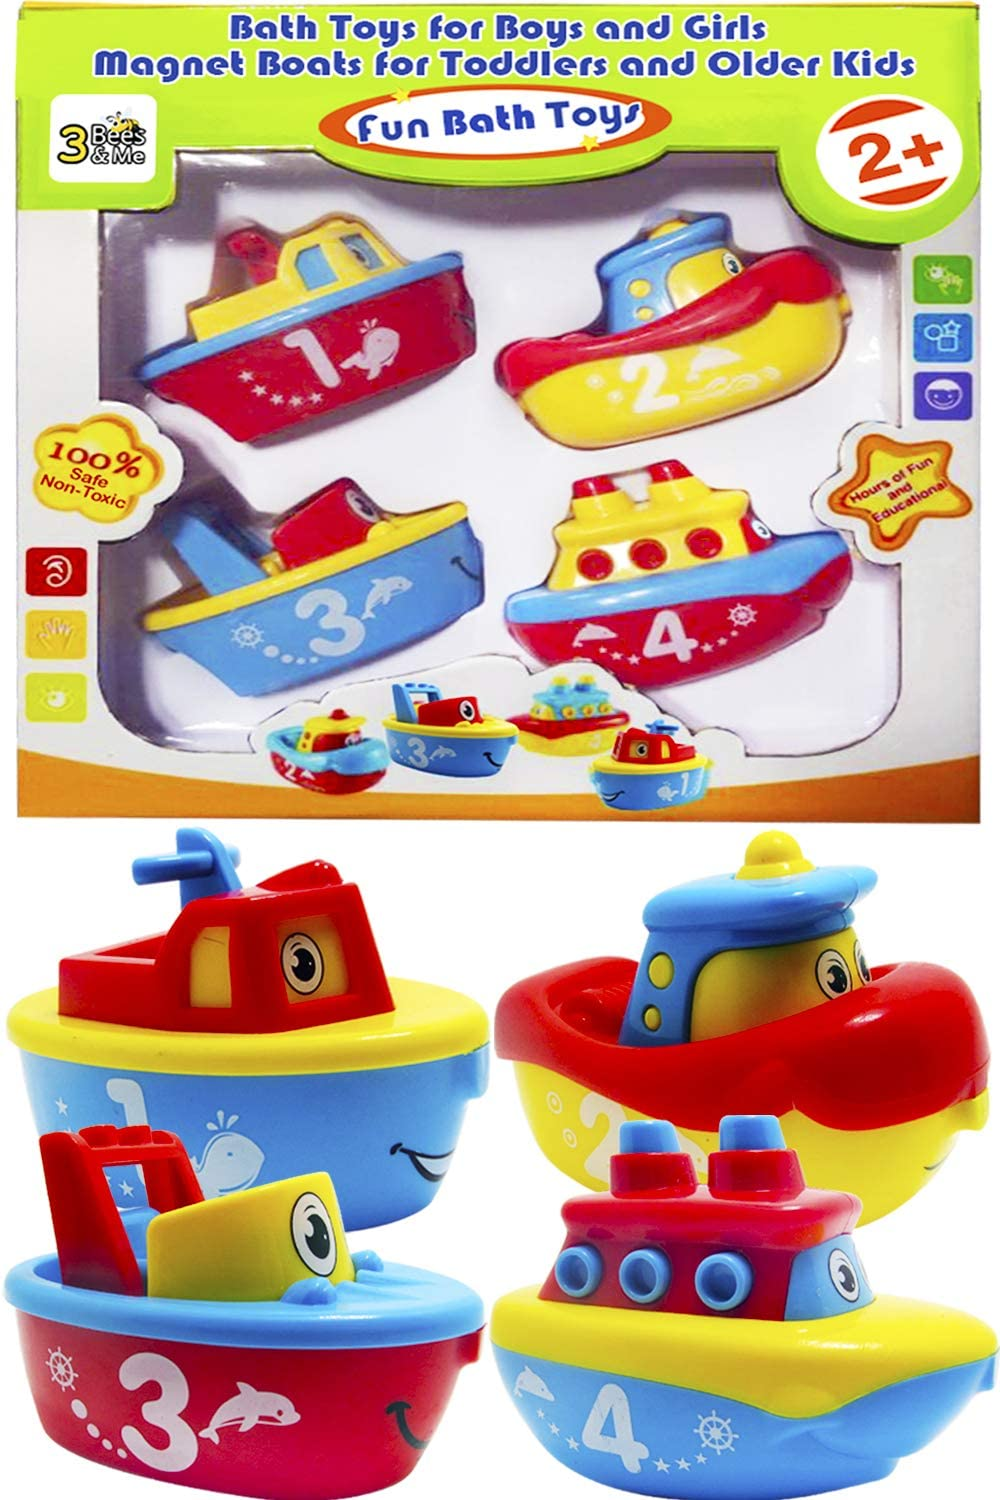 Magnet Boat Toy Set for Bath